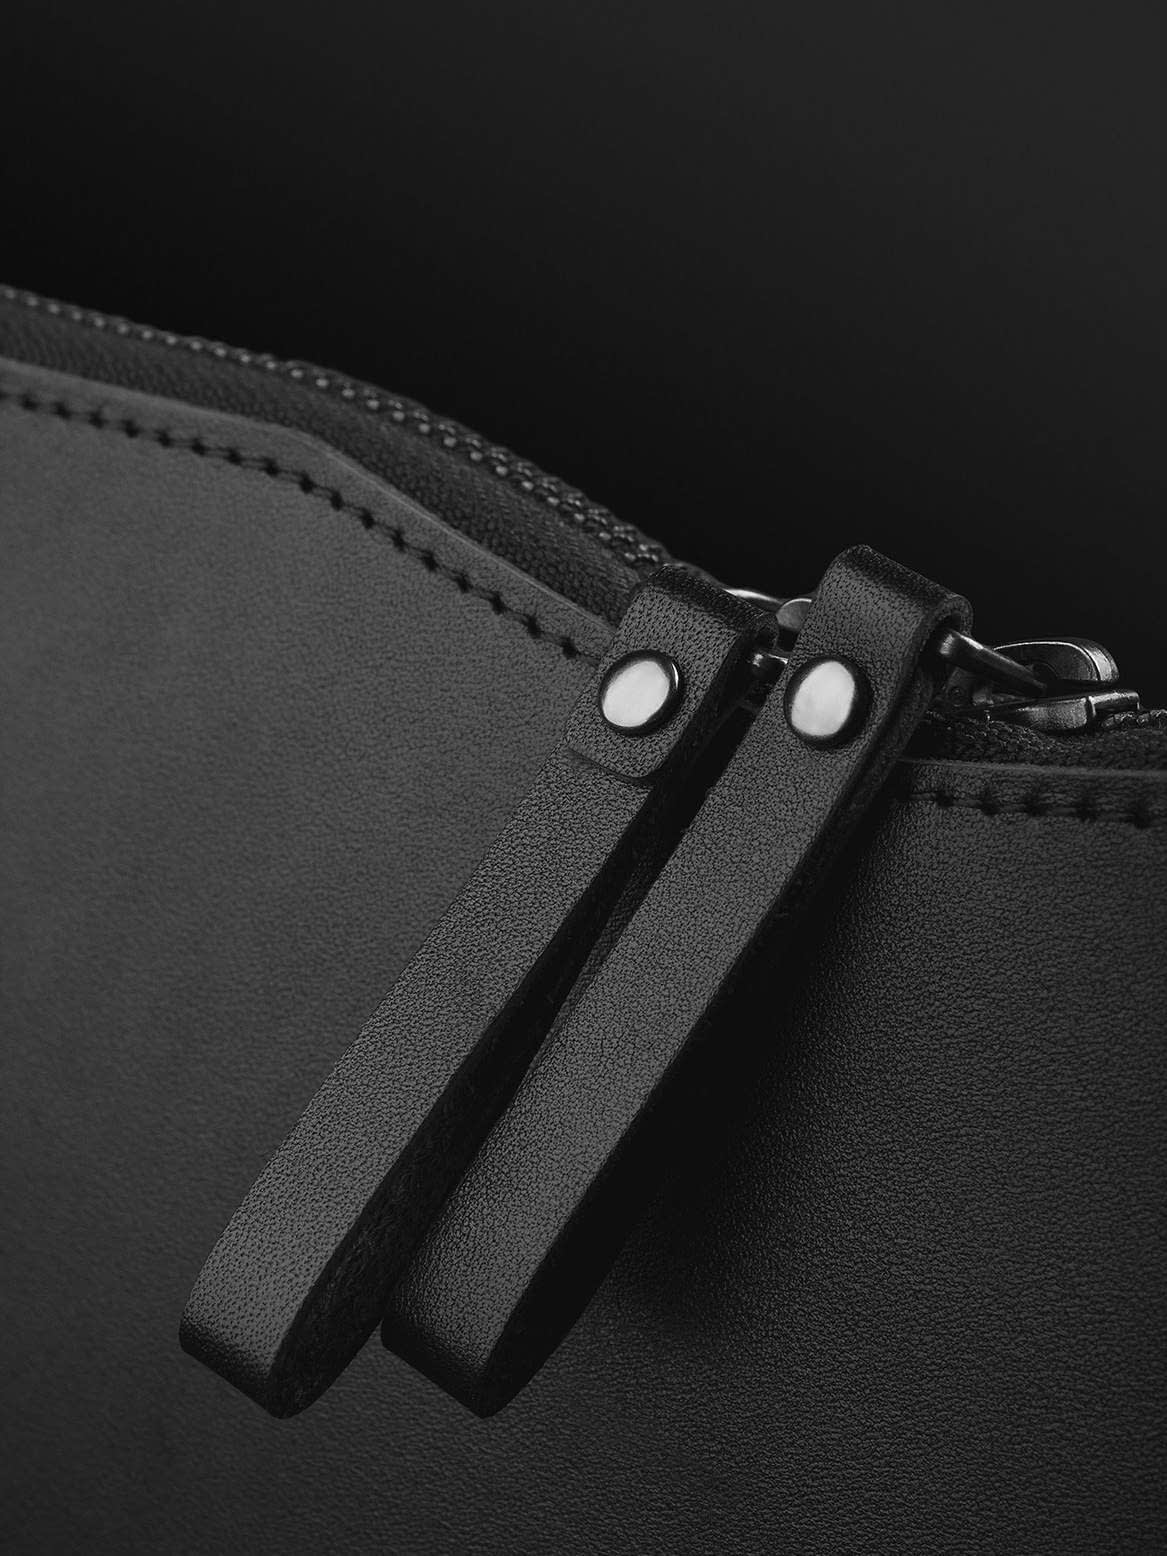 Carry On Folio Sleeve for 12